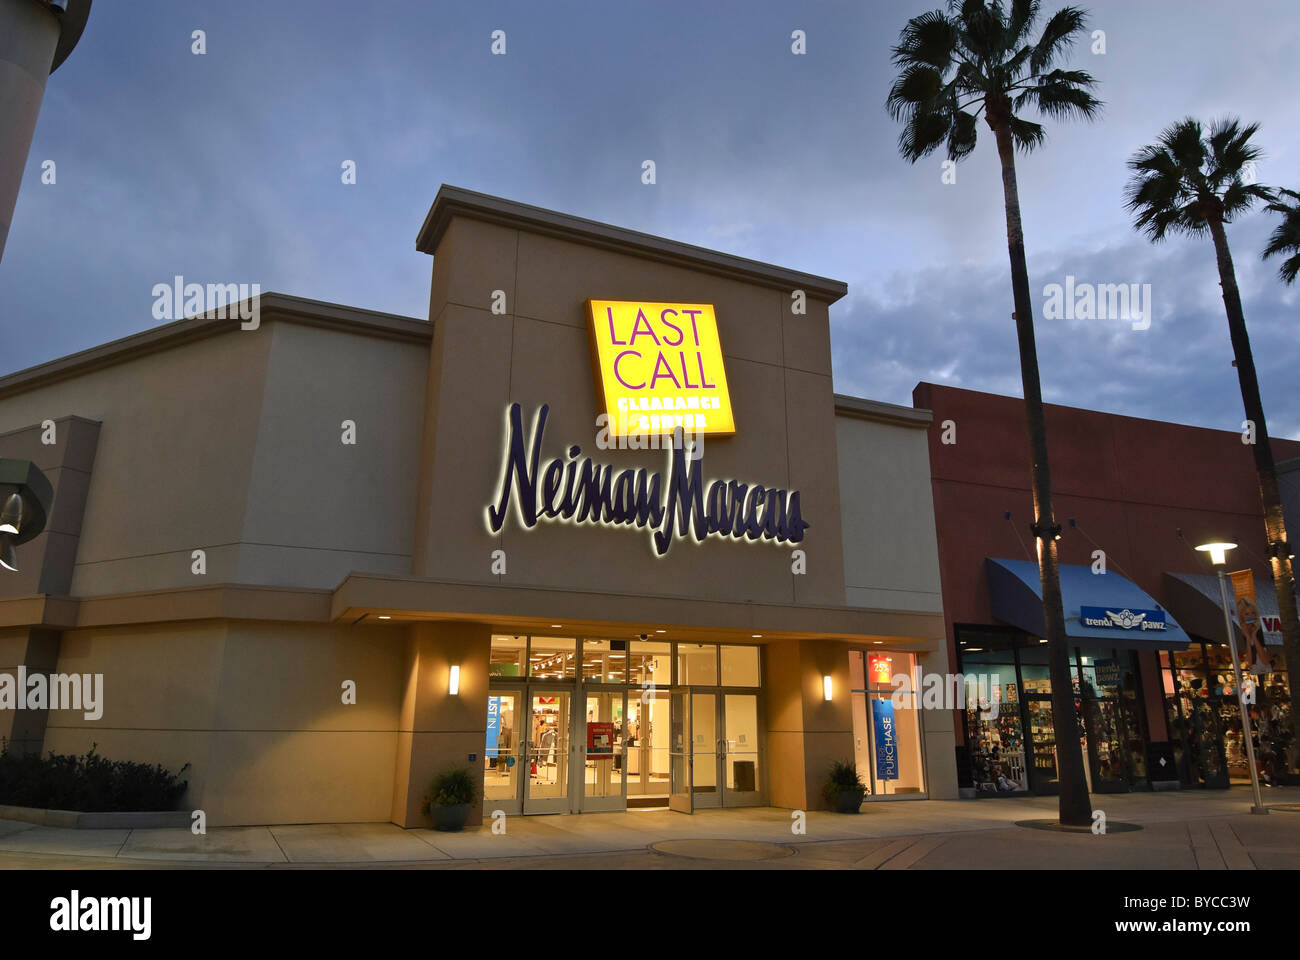 Neiman Marcus Philip Stein Find a Last Call Store Near You. Enter City, State or Zip Code. No stores within miles of